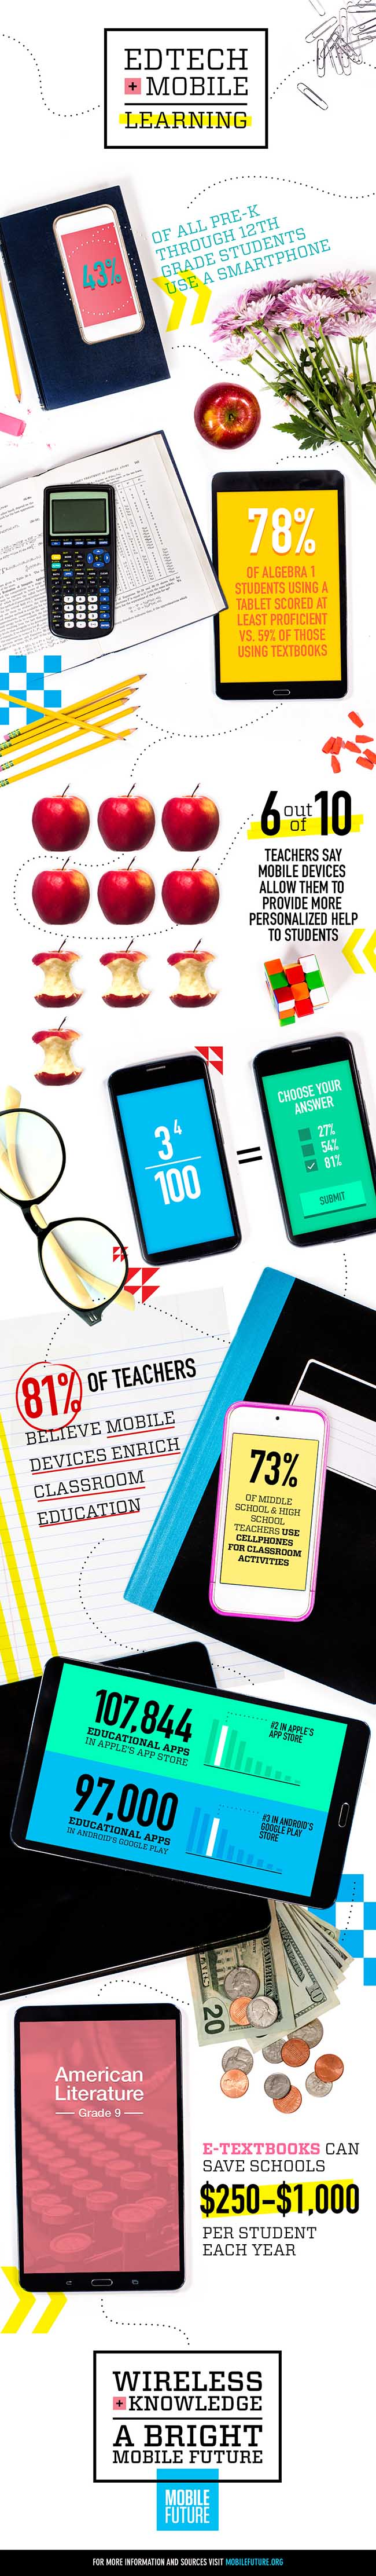 edtech_mobile_learning_infographic_for_school_wireless_networks.jpg